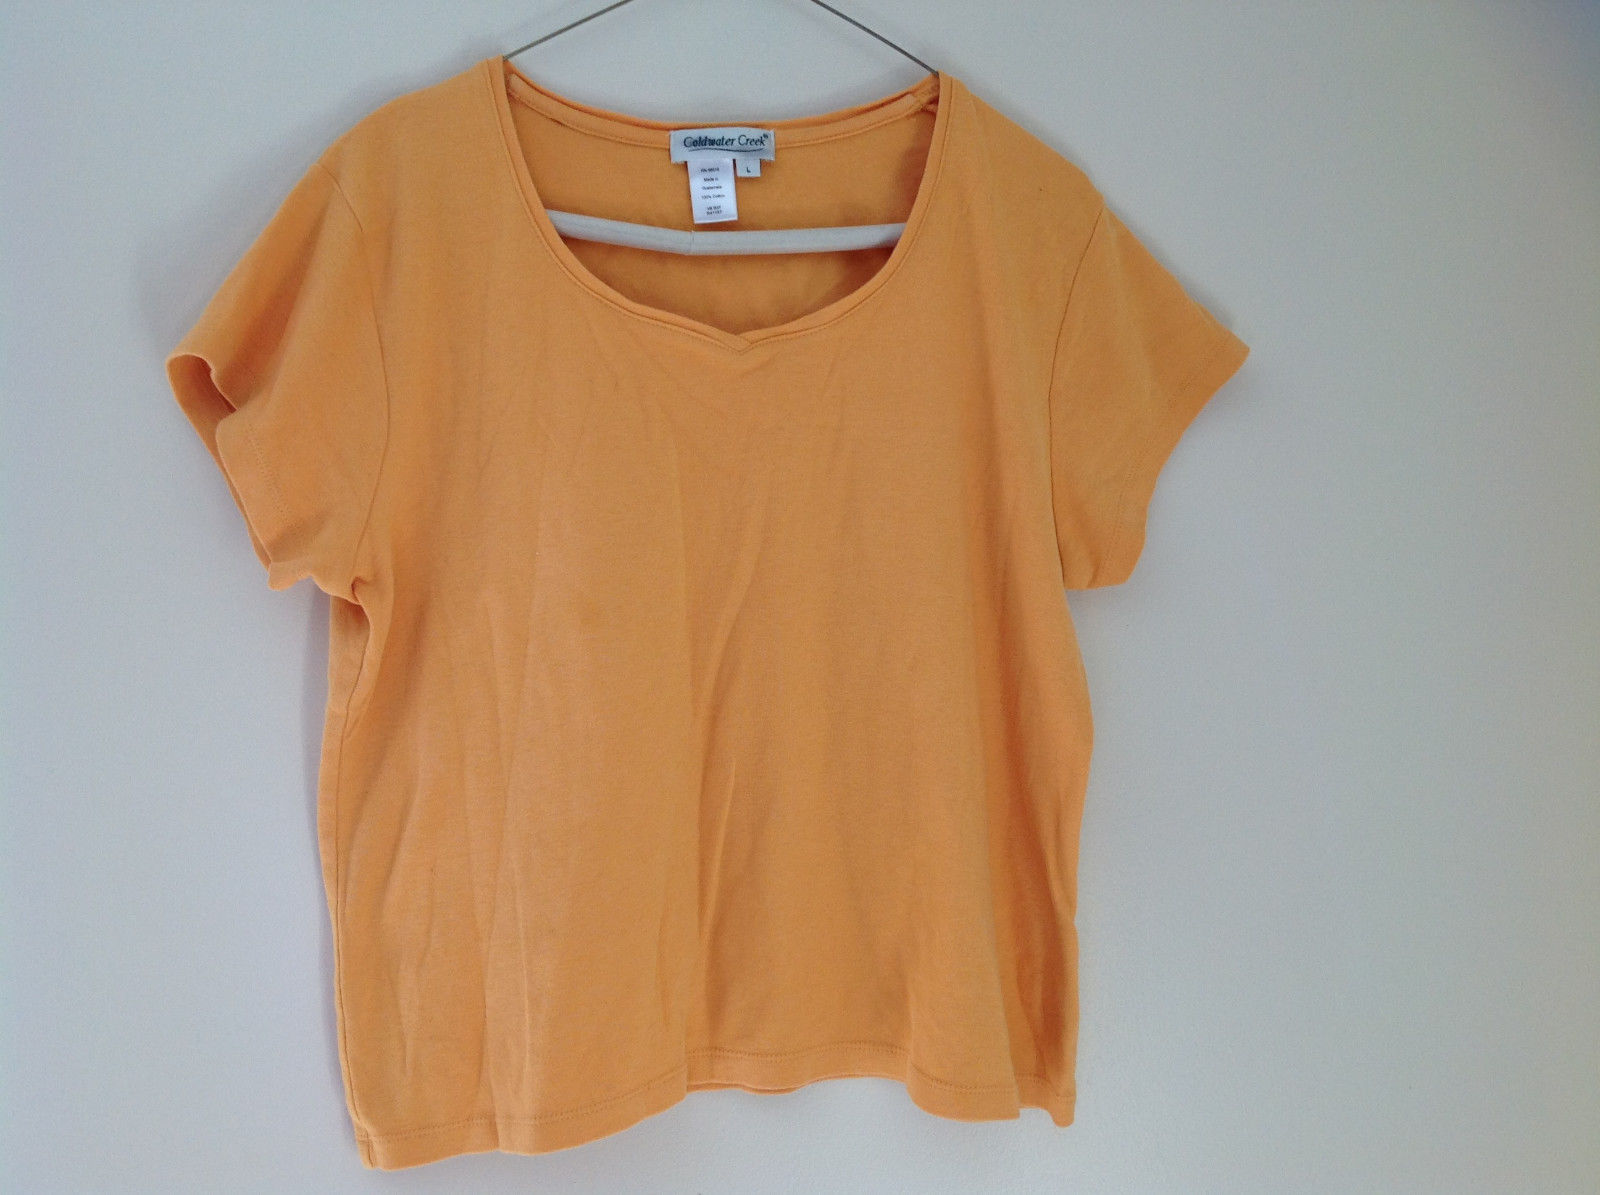 Coldwater Creek Golden Yellow V-neck Short Sleeve Top Size Large